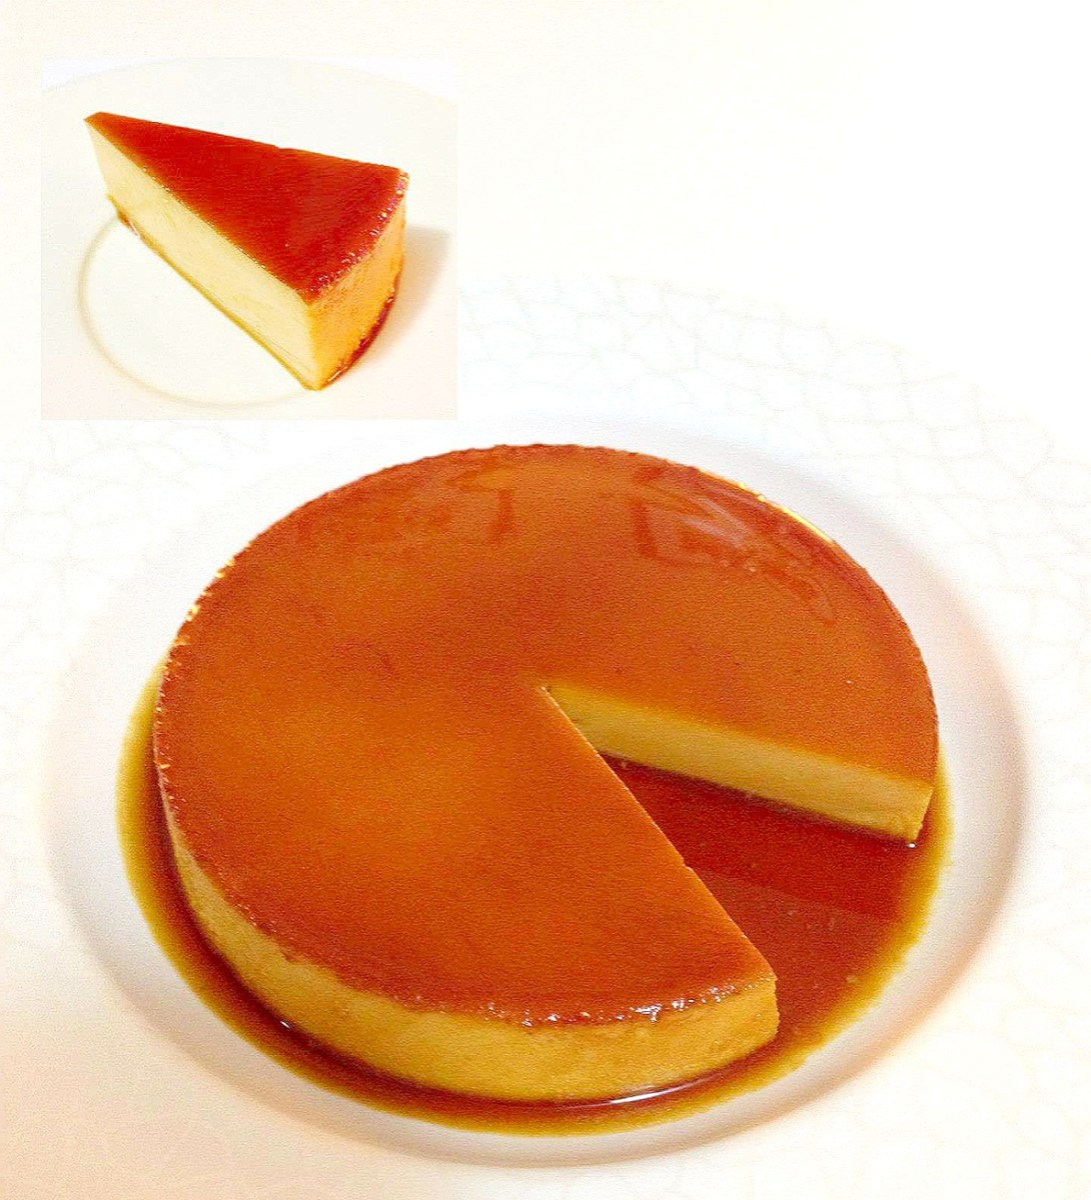 How to Make a Smooth Leche Flan